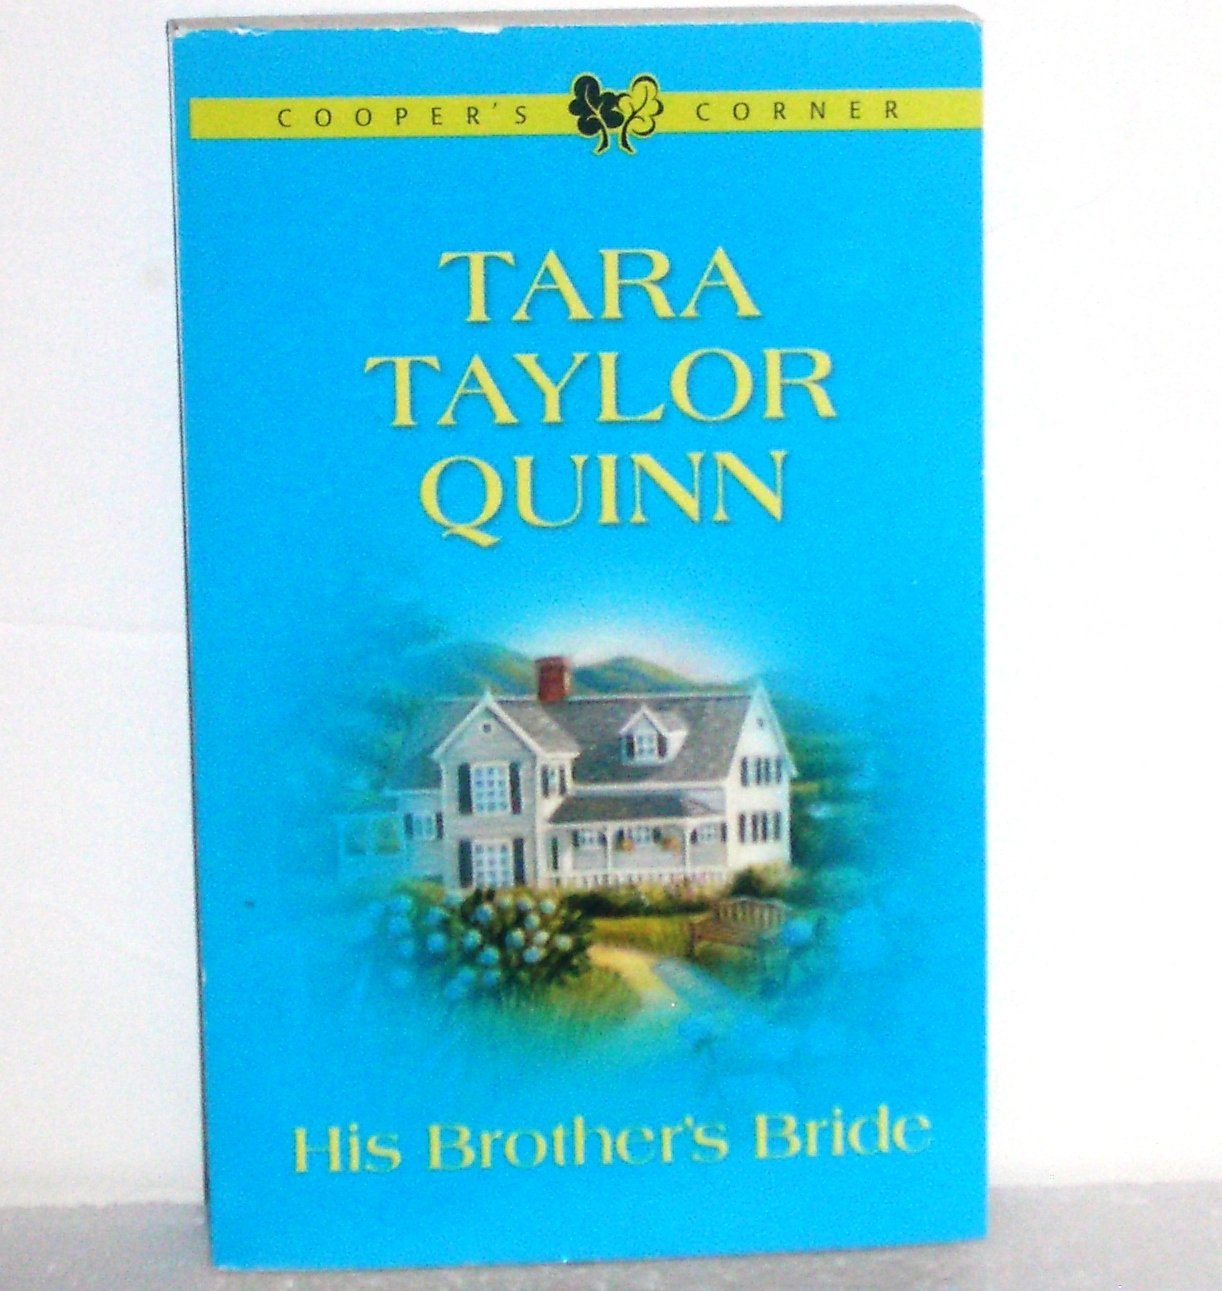 His Brother's Bride by Tara Taylor Quinn Romance 2002 Cooper's Corner Series